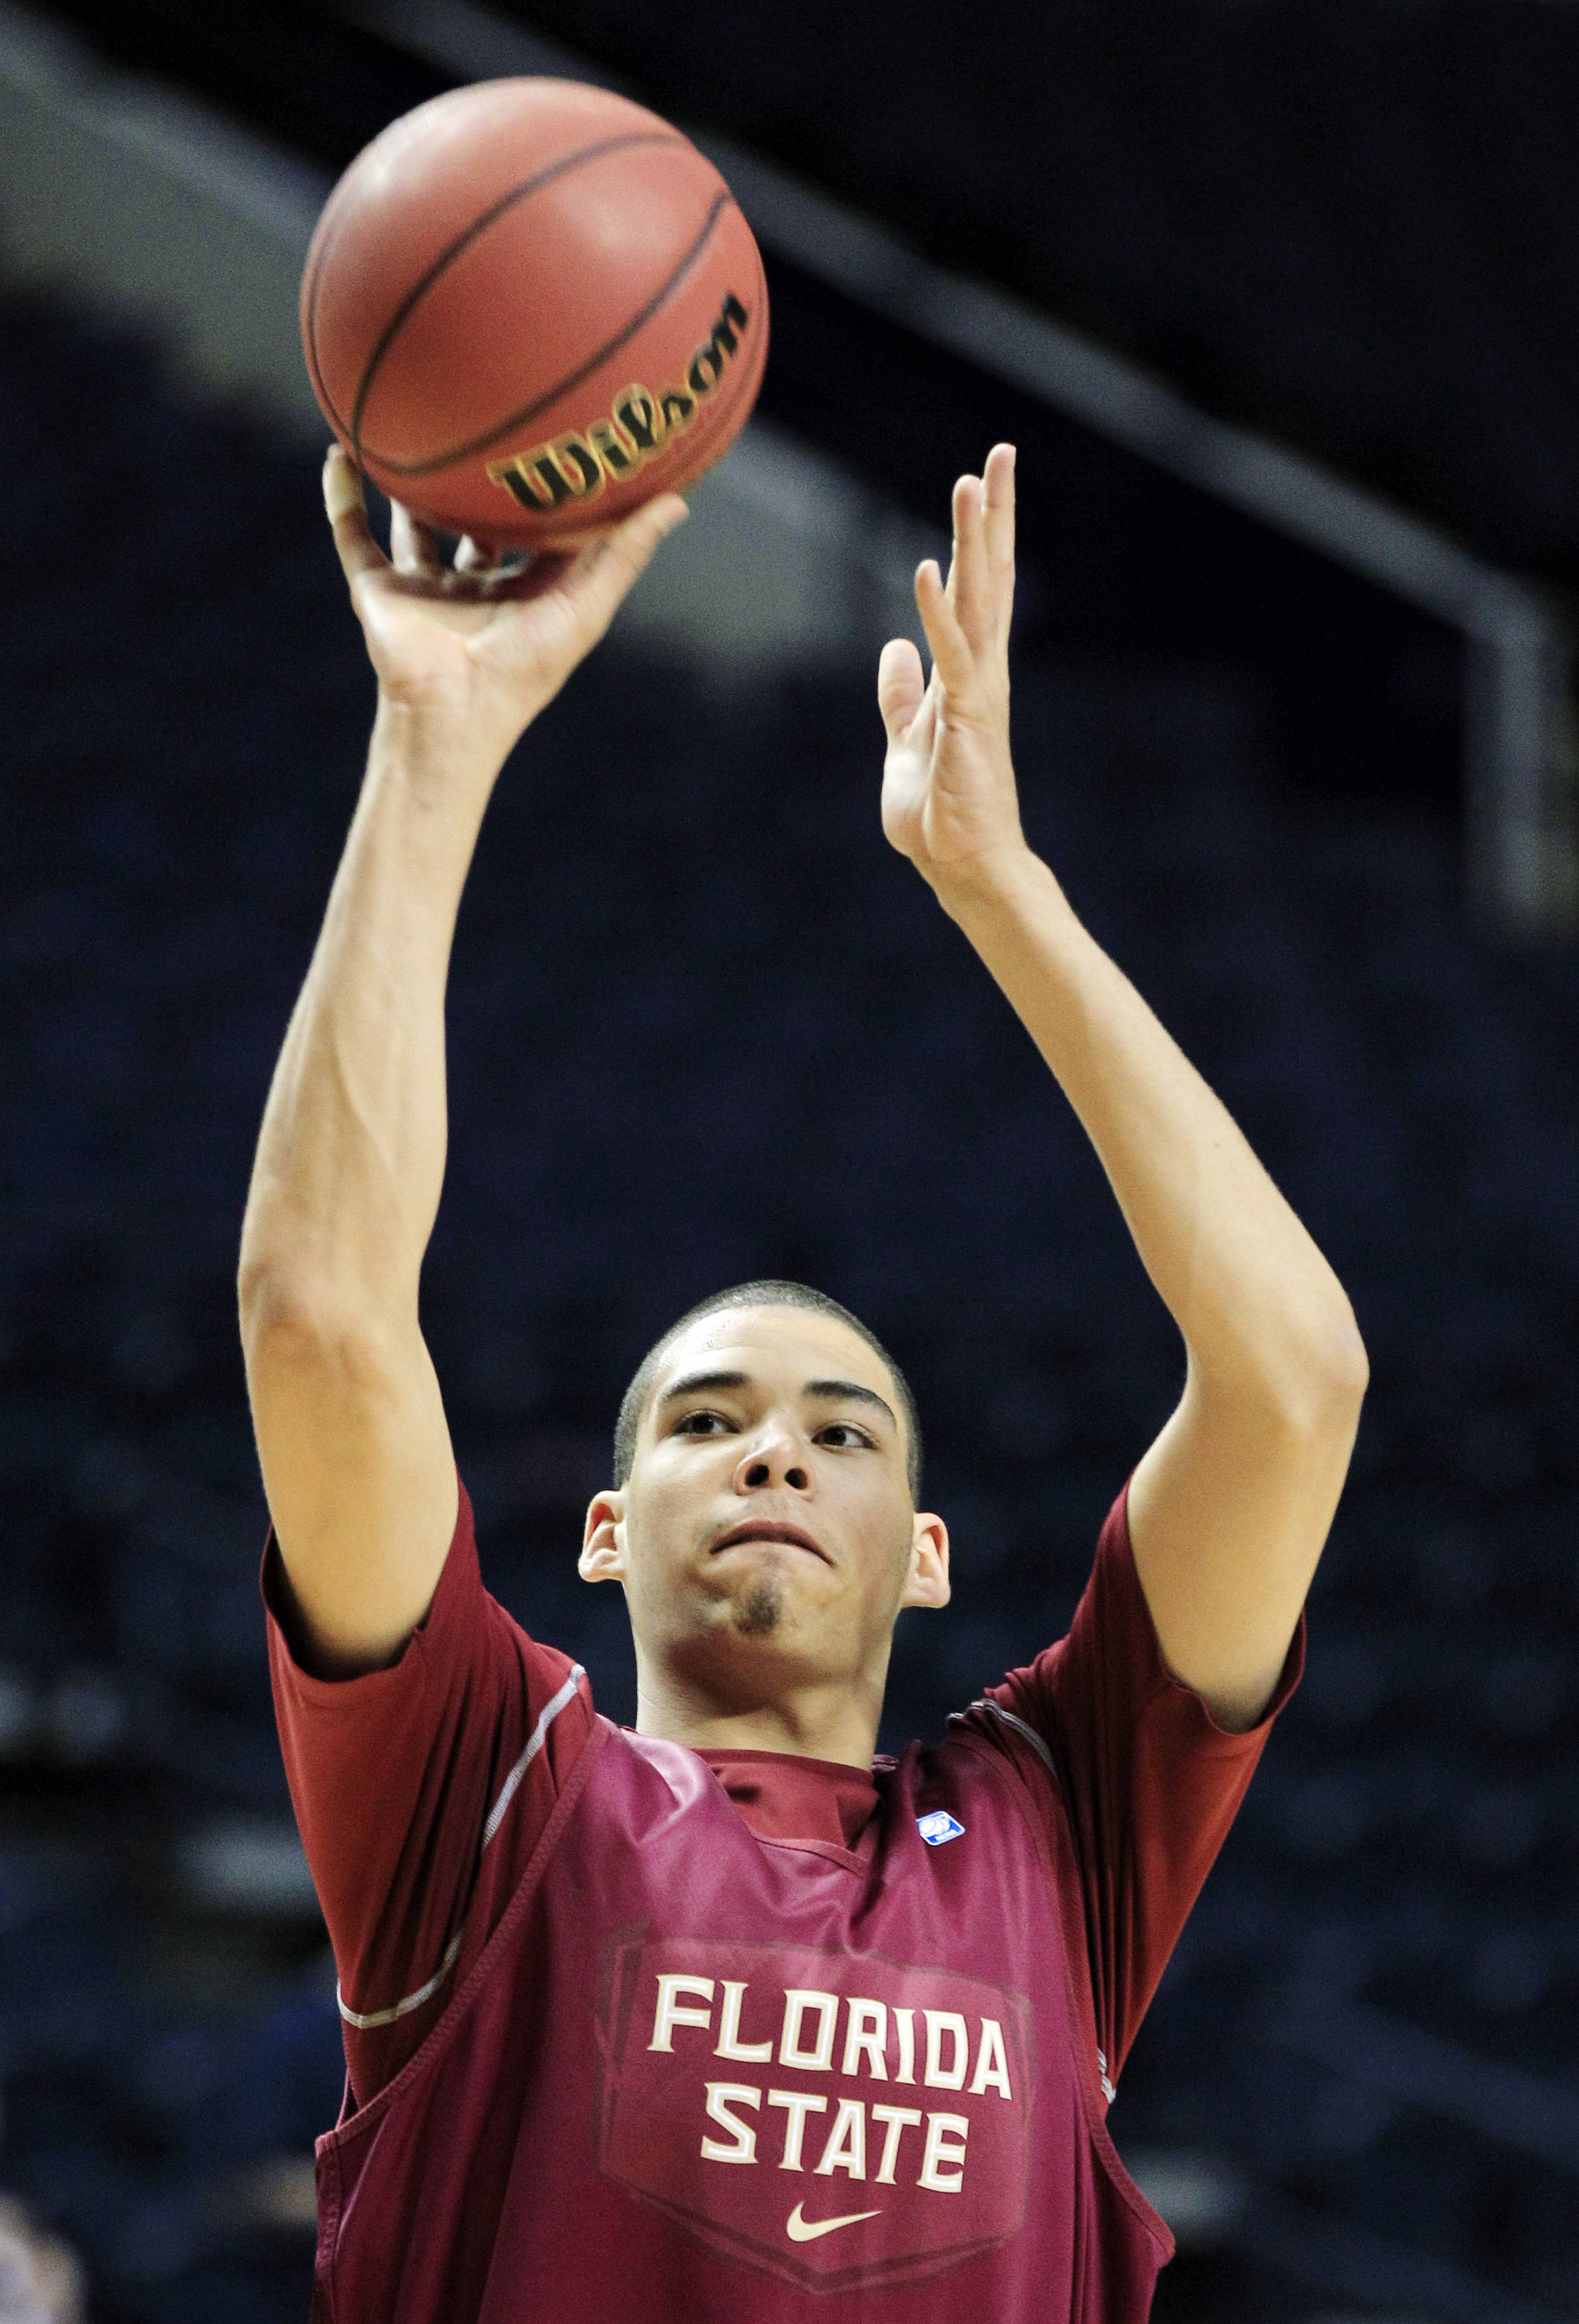 Florida State center Kiel Turpin shoots during practice for an NCAA college basketball tournament game on Thursday, March 15, 2012, in Nashville, Tenn. Florida State is scheduled to play St. Bonaventure on Friday. (AP Photo/Mark Humphrey)